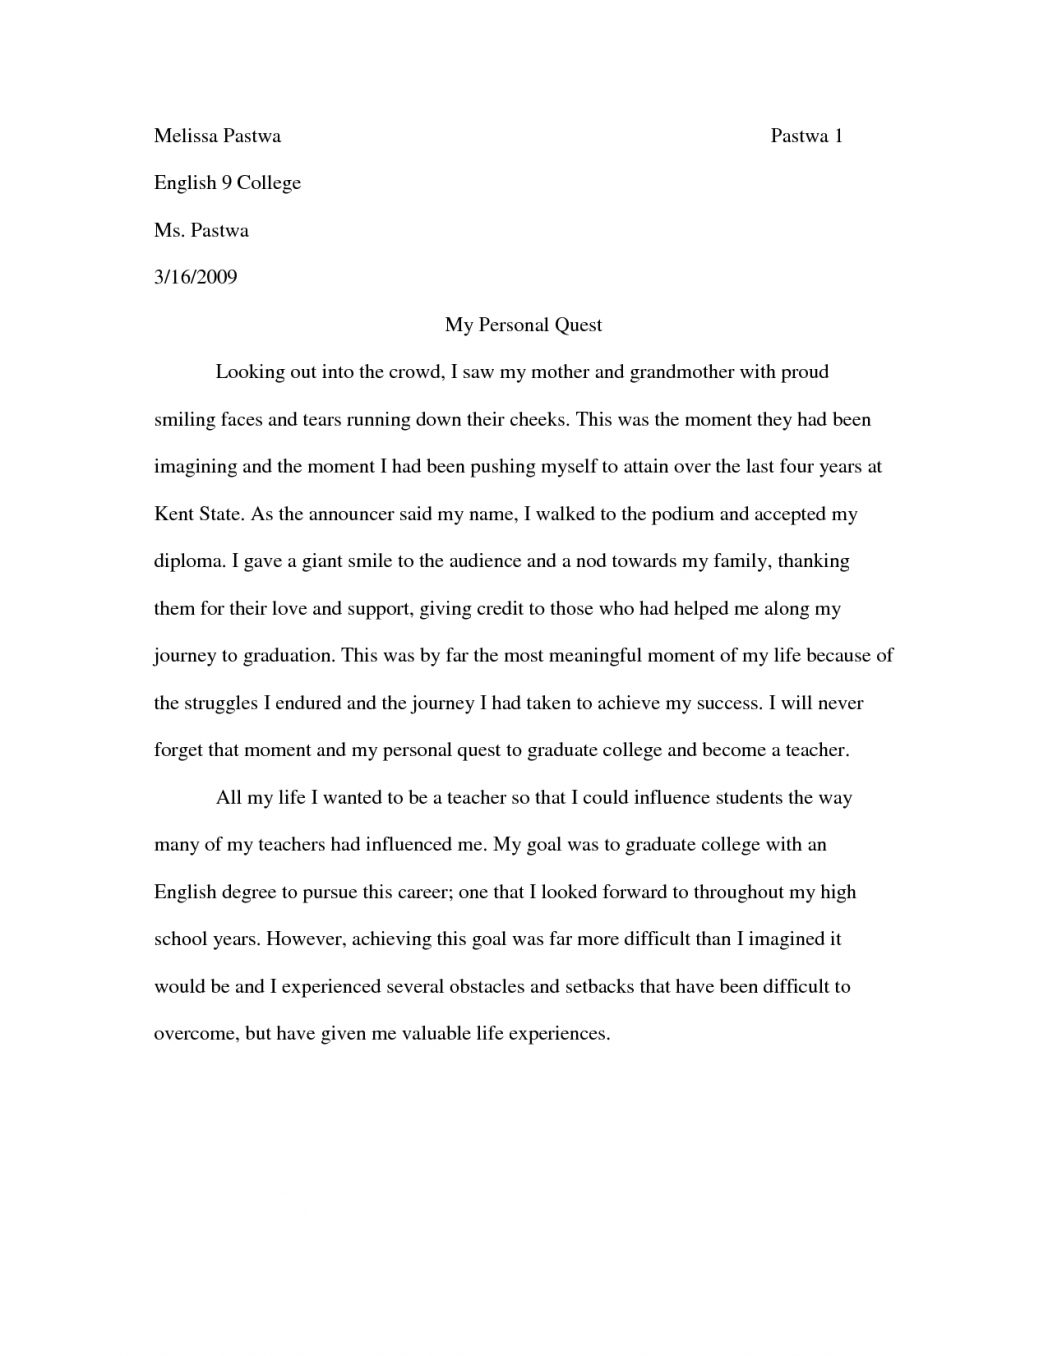 005 College Essays Printables Corner Harvard Prompts Ecza Solinf Co Best Ucf Prompt Pomona Mit Uc Texas Amherst Boston 1048x1356 Archaicawful Essay 2017 Full